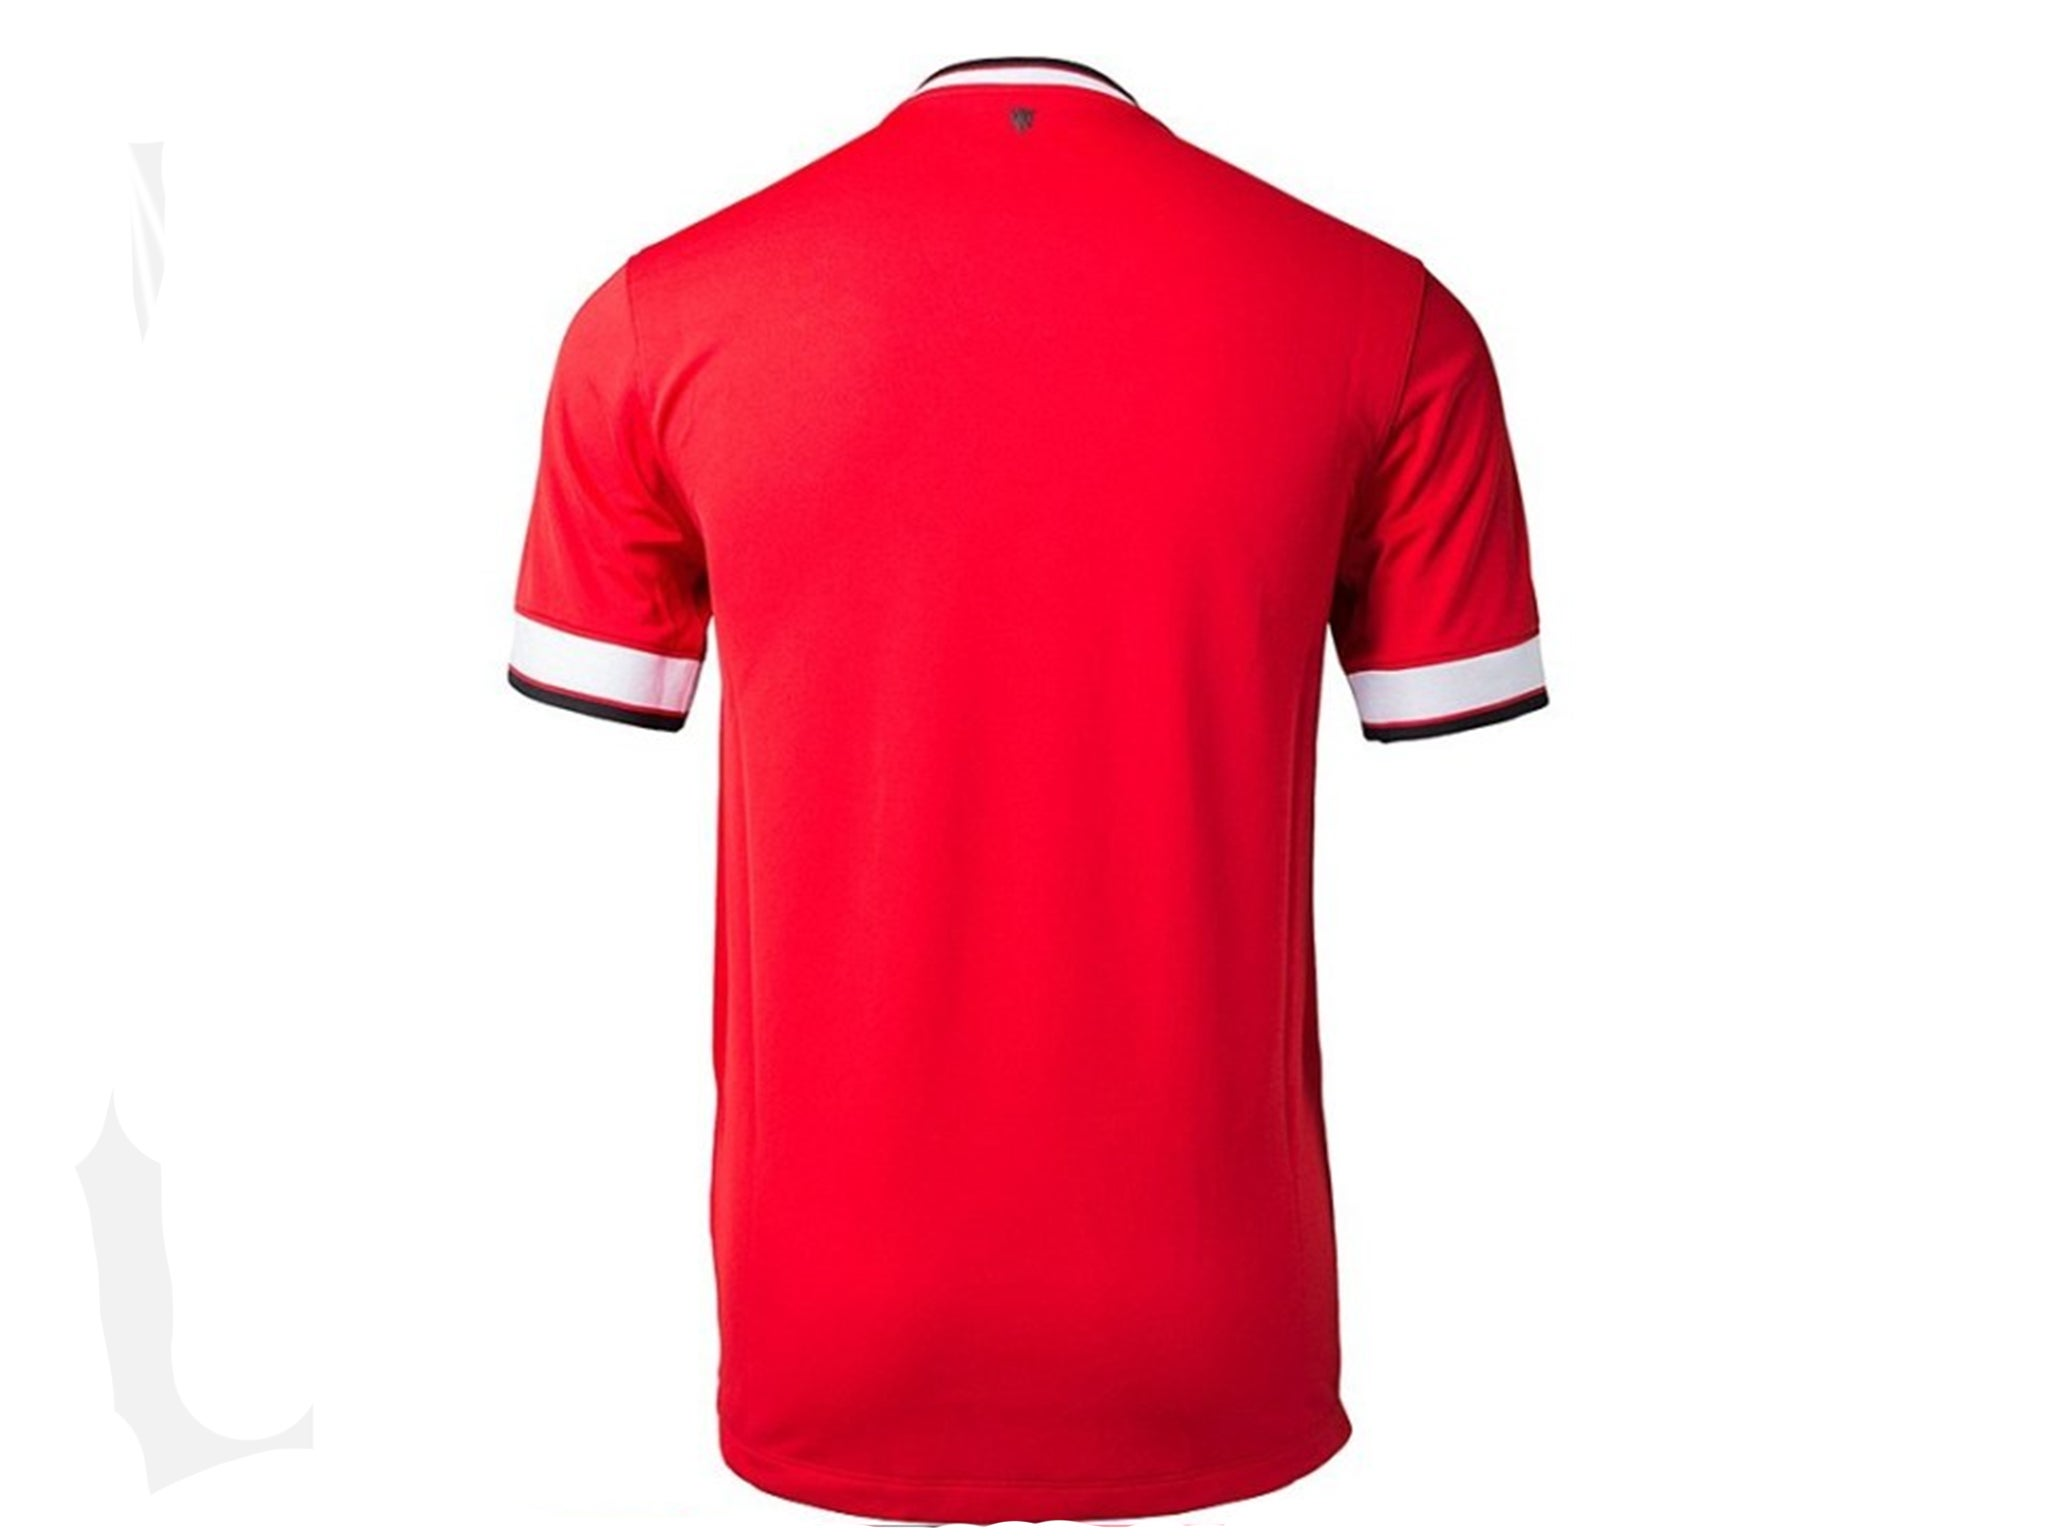 quality design 89b1c 89dfa Manchester United kit: Has the 2014/15 Premier League strip ...